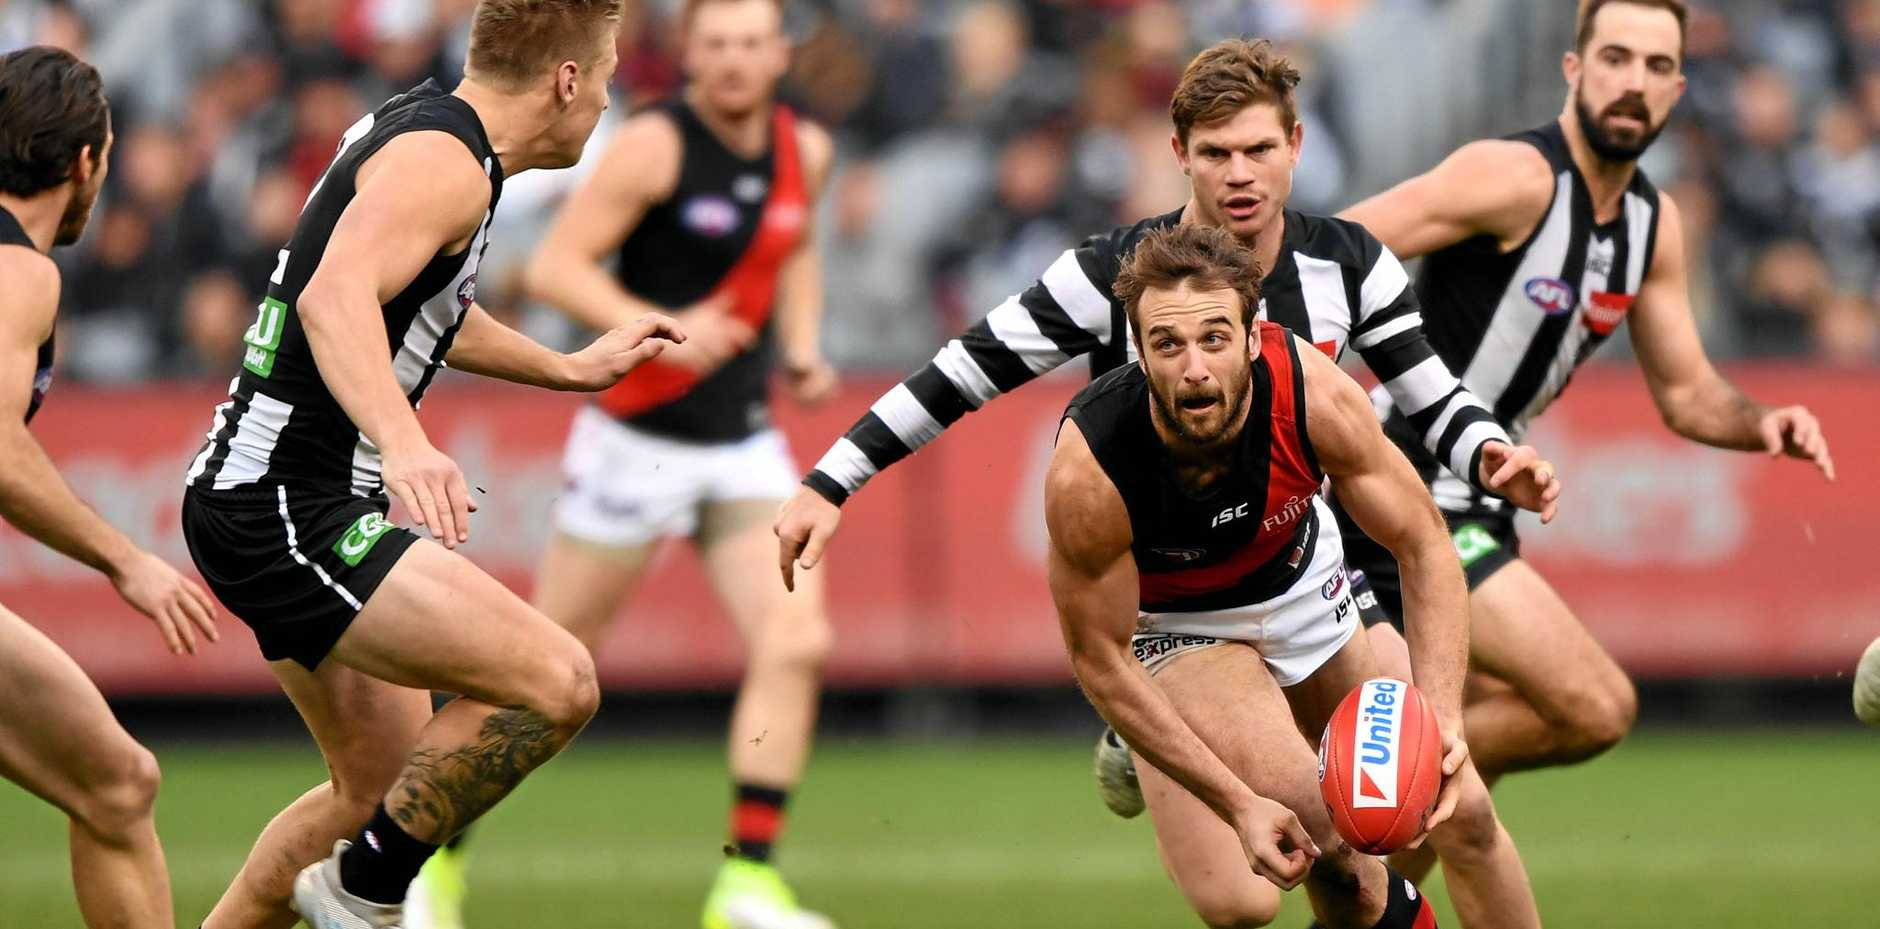 WHEREABOUTS UNKNOWN: The exact location of Jobe Watson's 2012 Brownlow Medal is unknown. Watson's Seb Ross said he thinks he saw it on a shelf at his grandparents house.